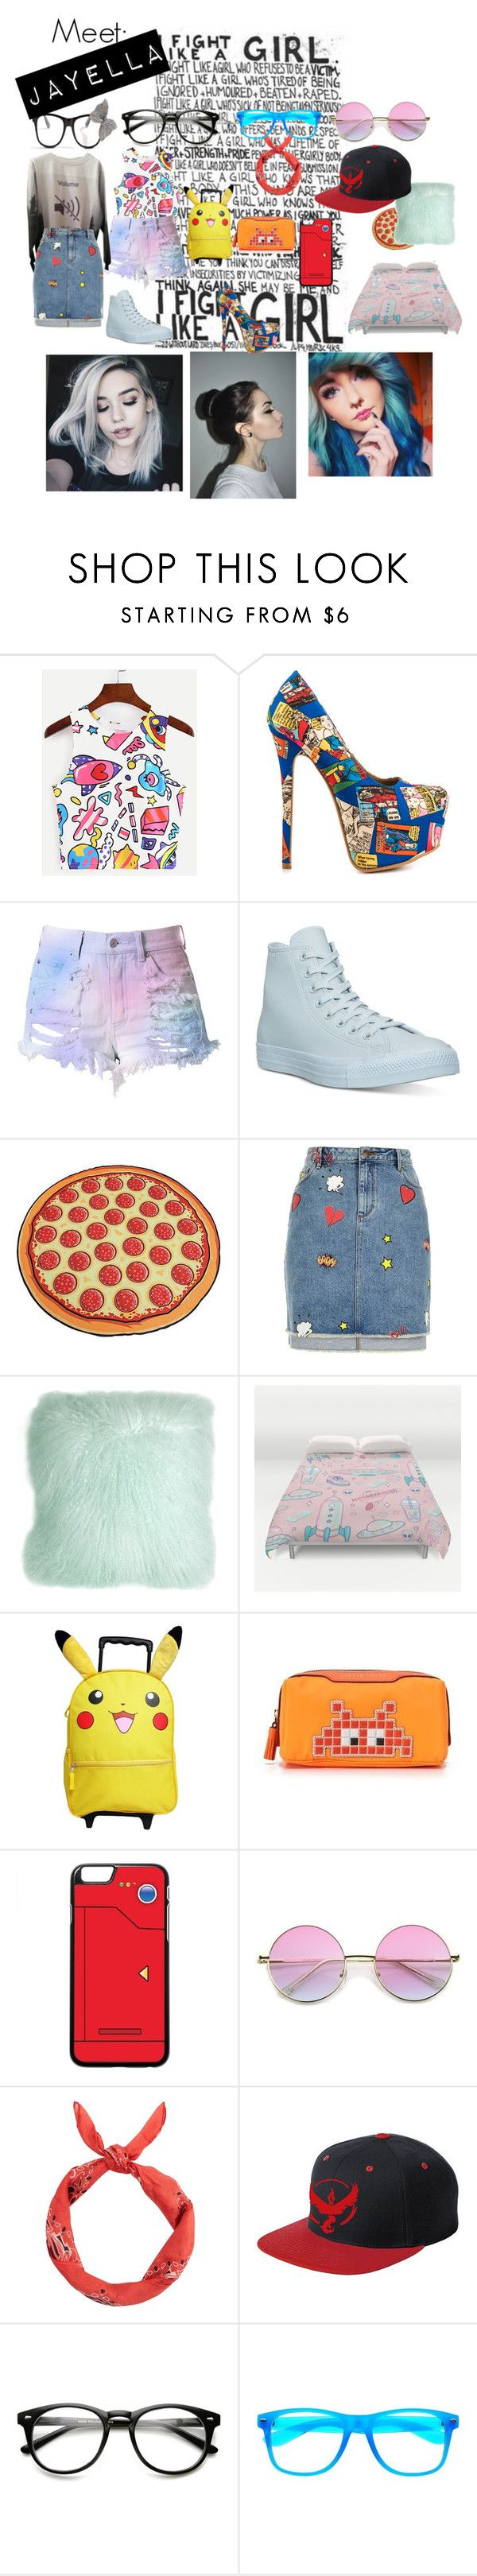 """Meet Jayella"" by rileykaren ❤ liked on Polyvore featuring Shoe Republic LA, Cotton Candy, Converse, River Island, Pillow Decor, Anya Hindmarch and New Look"